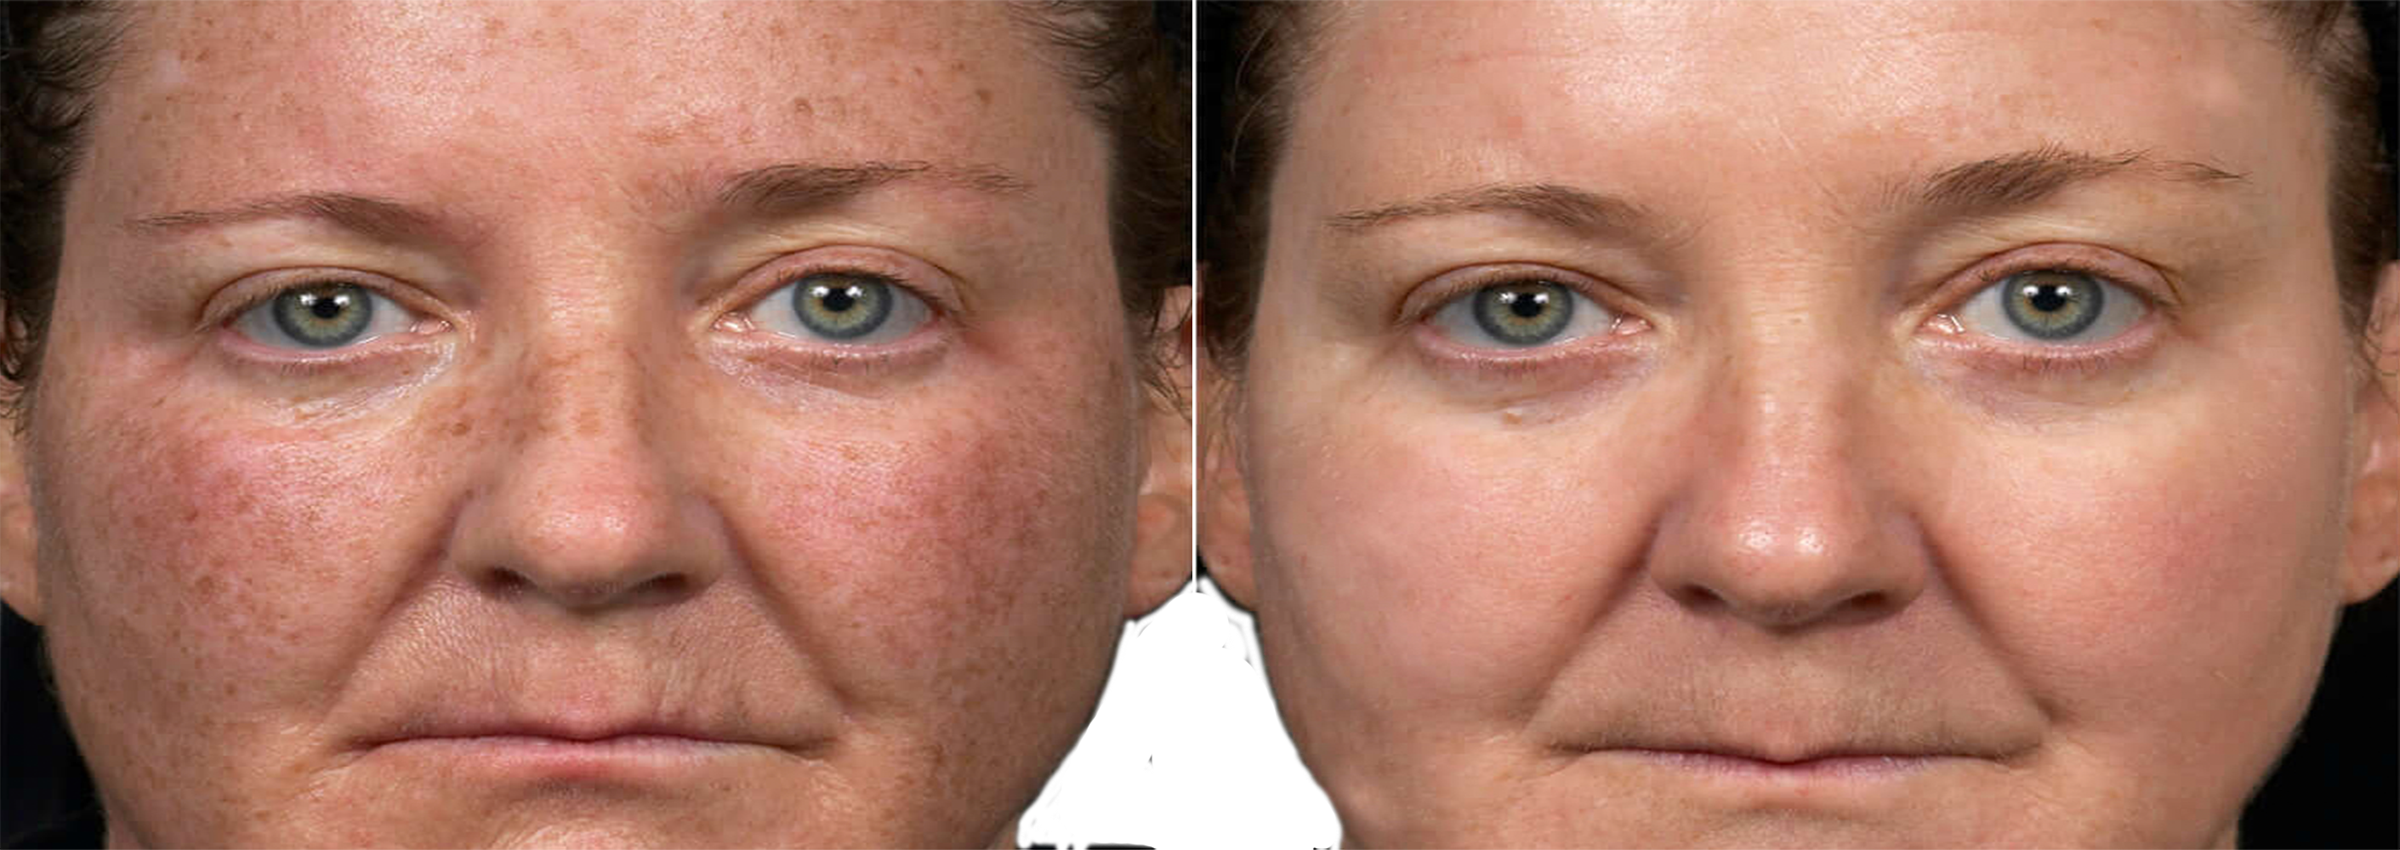 Long Island color correction and skin rejuvenation before after